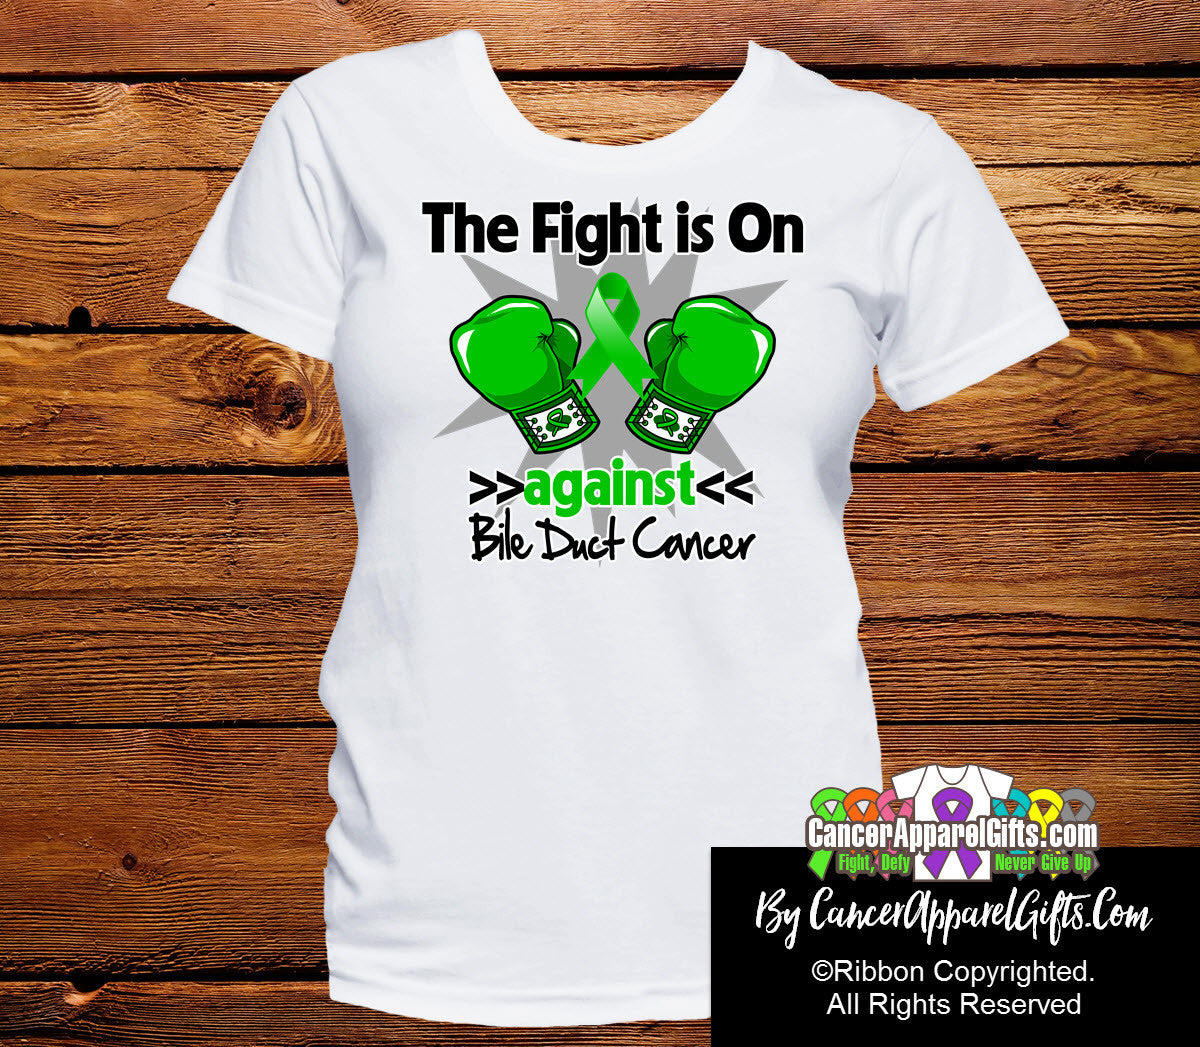 Bile Duct Cancer The Fight is On Ladies Shirts